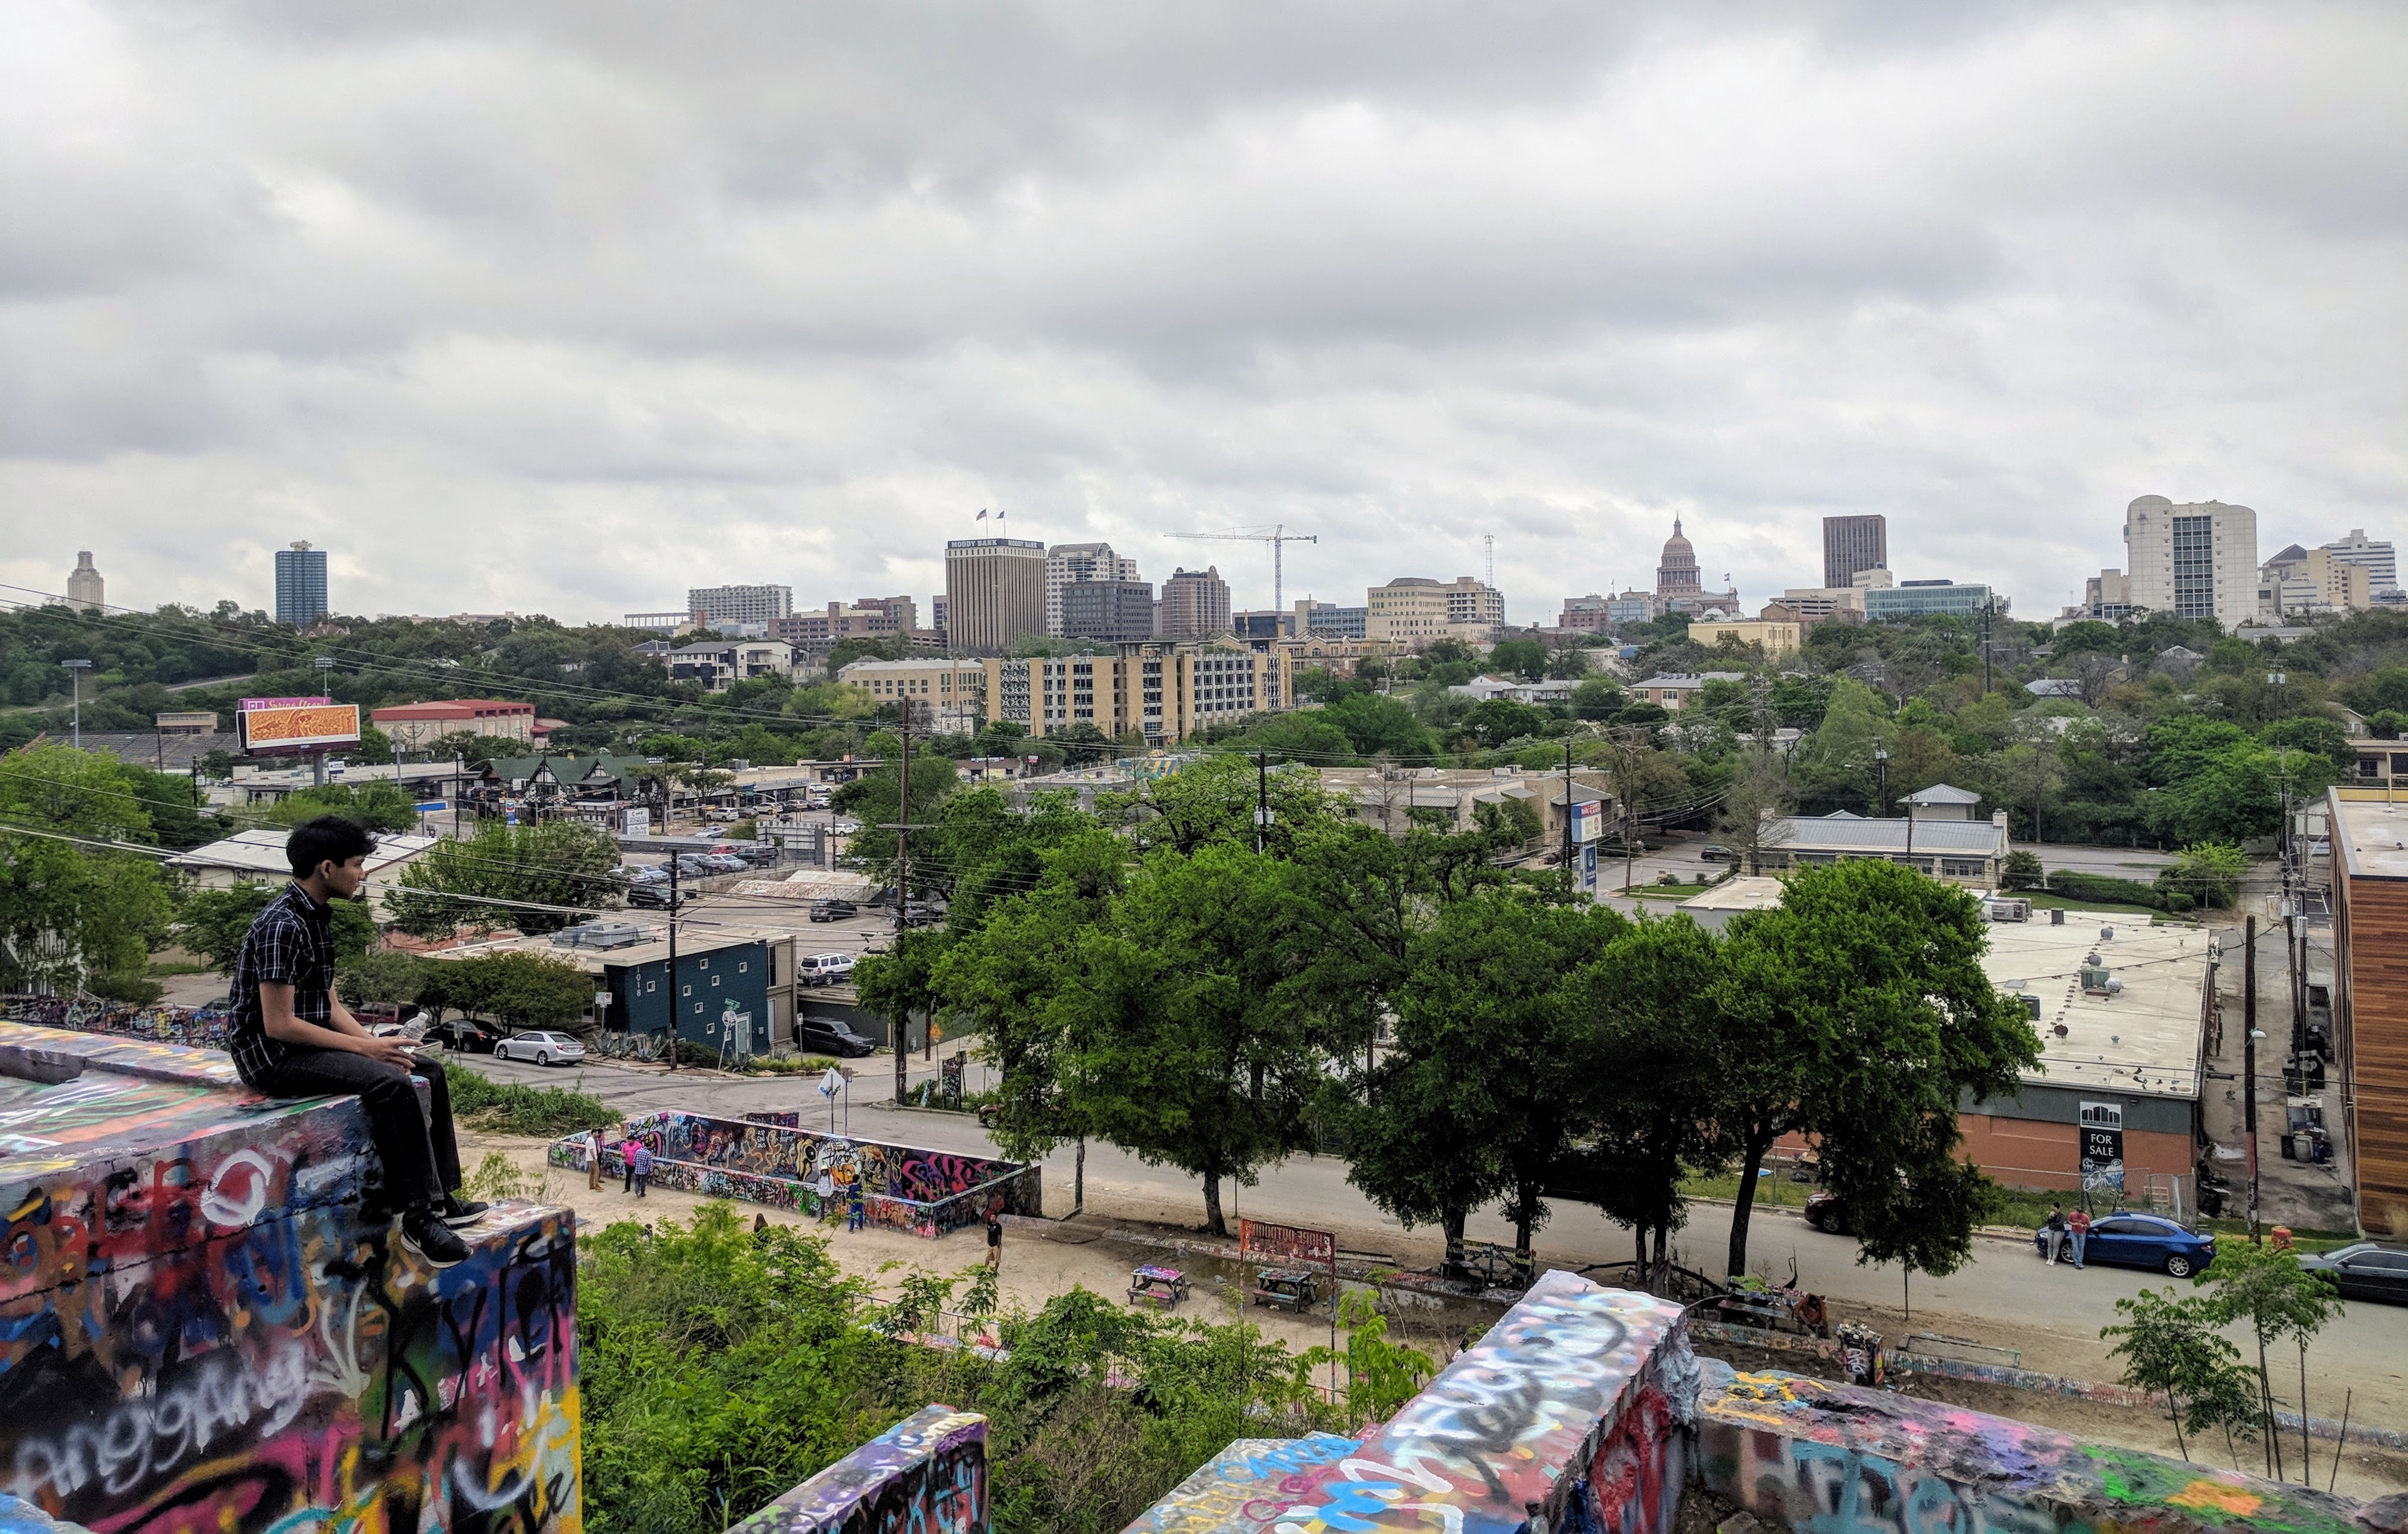 View from Hope Outdoor Gallery in Austin, TX.